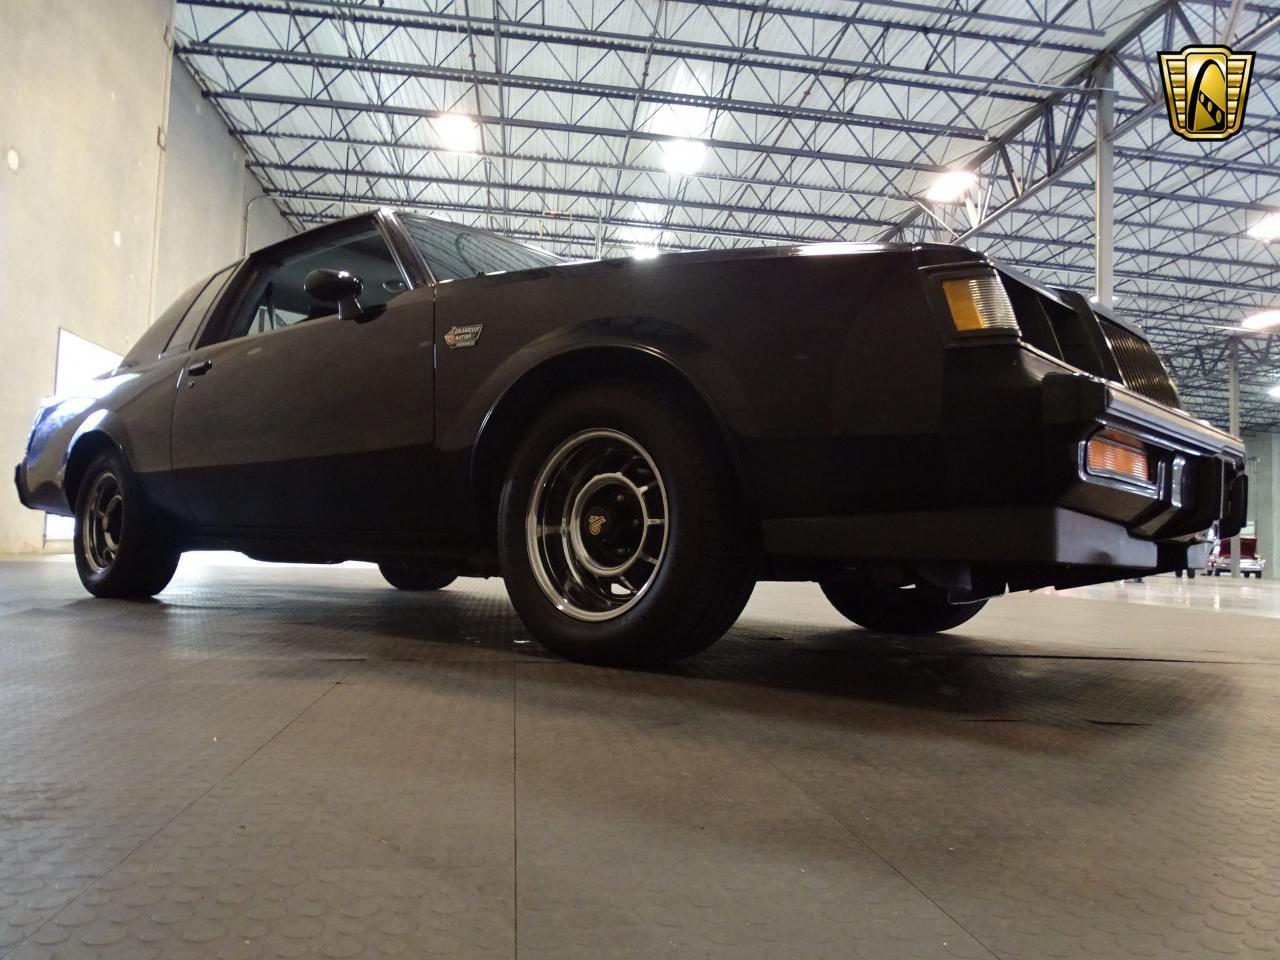 Large Picture of 1987 Buick Regal - $28,995.00 Offered by Gateway Classic Cars - Tampa - M4V5